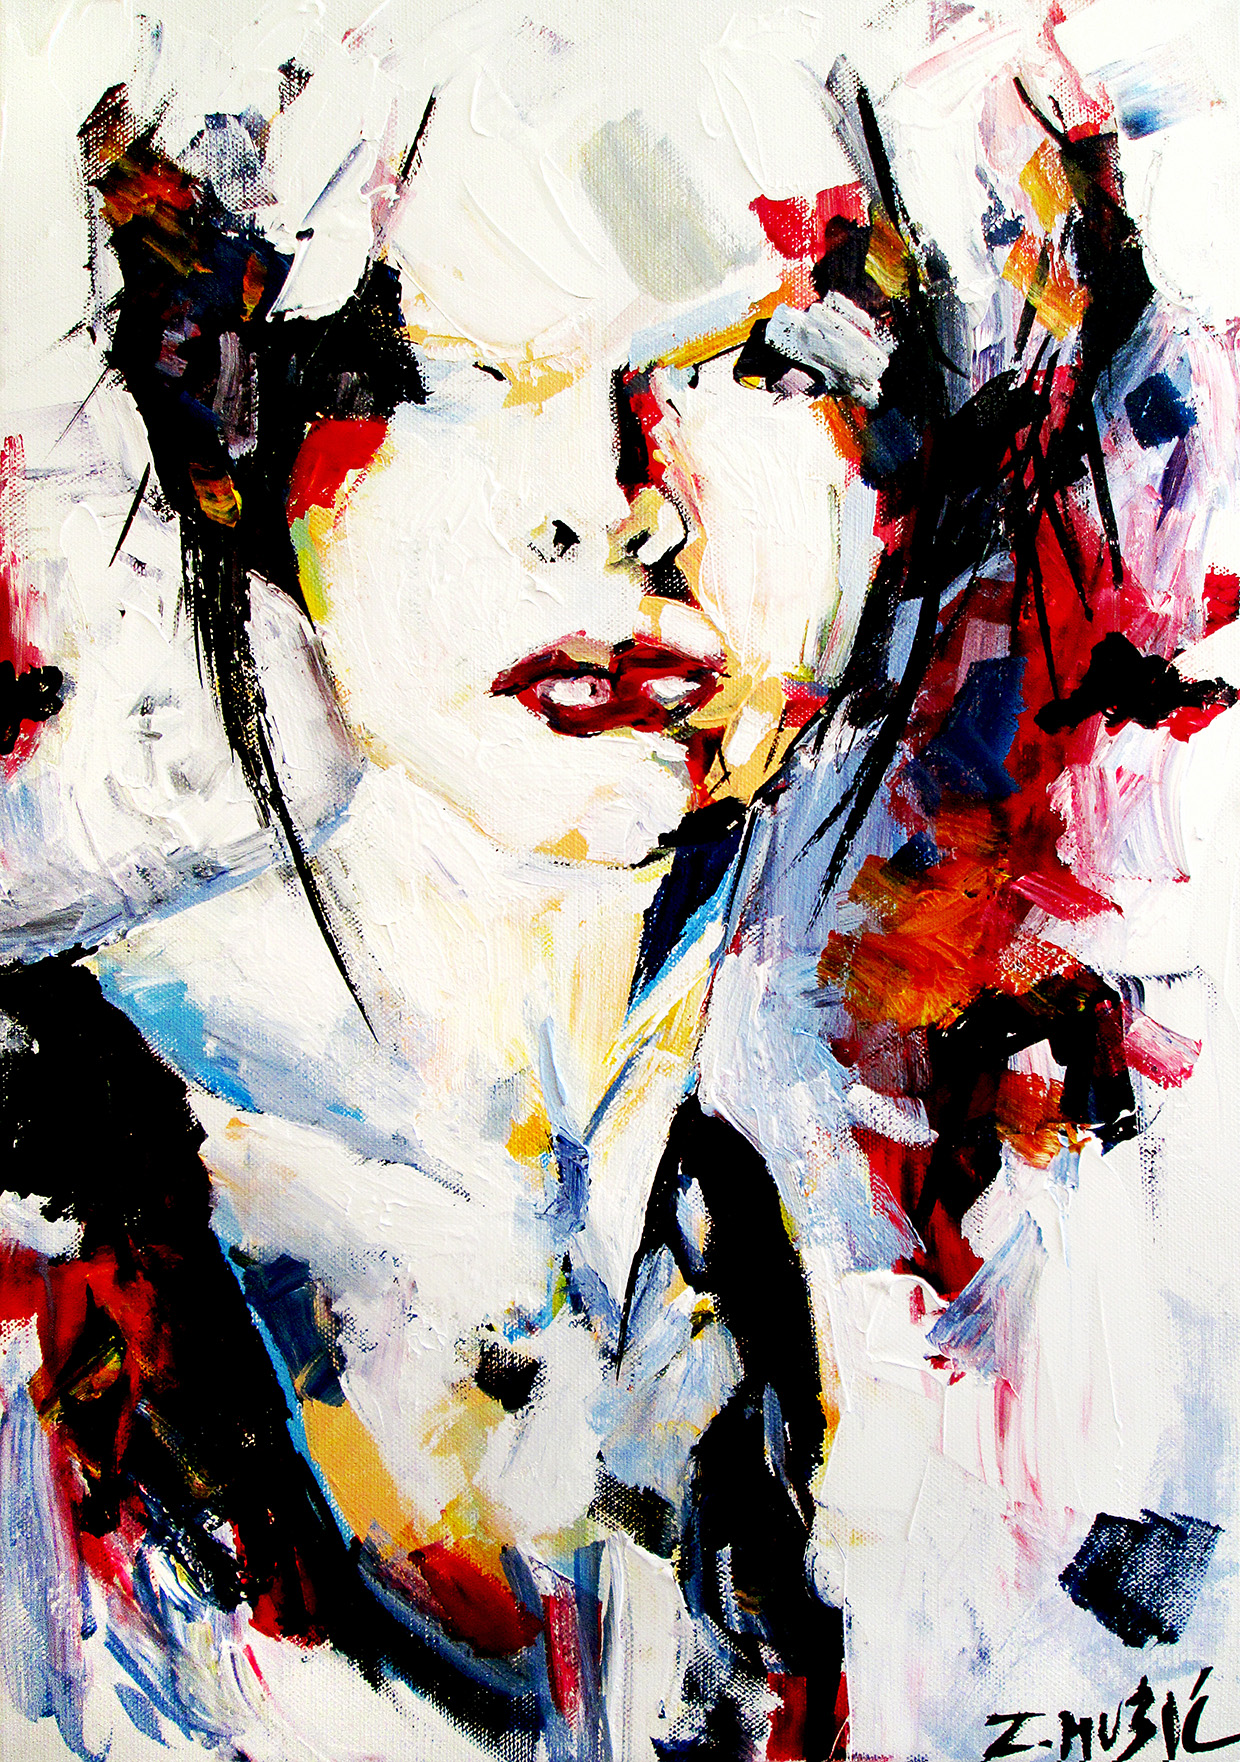 abstract-portrait -acrylic-on-canvas-contemporary-art-painting ...